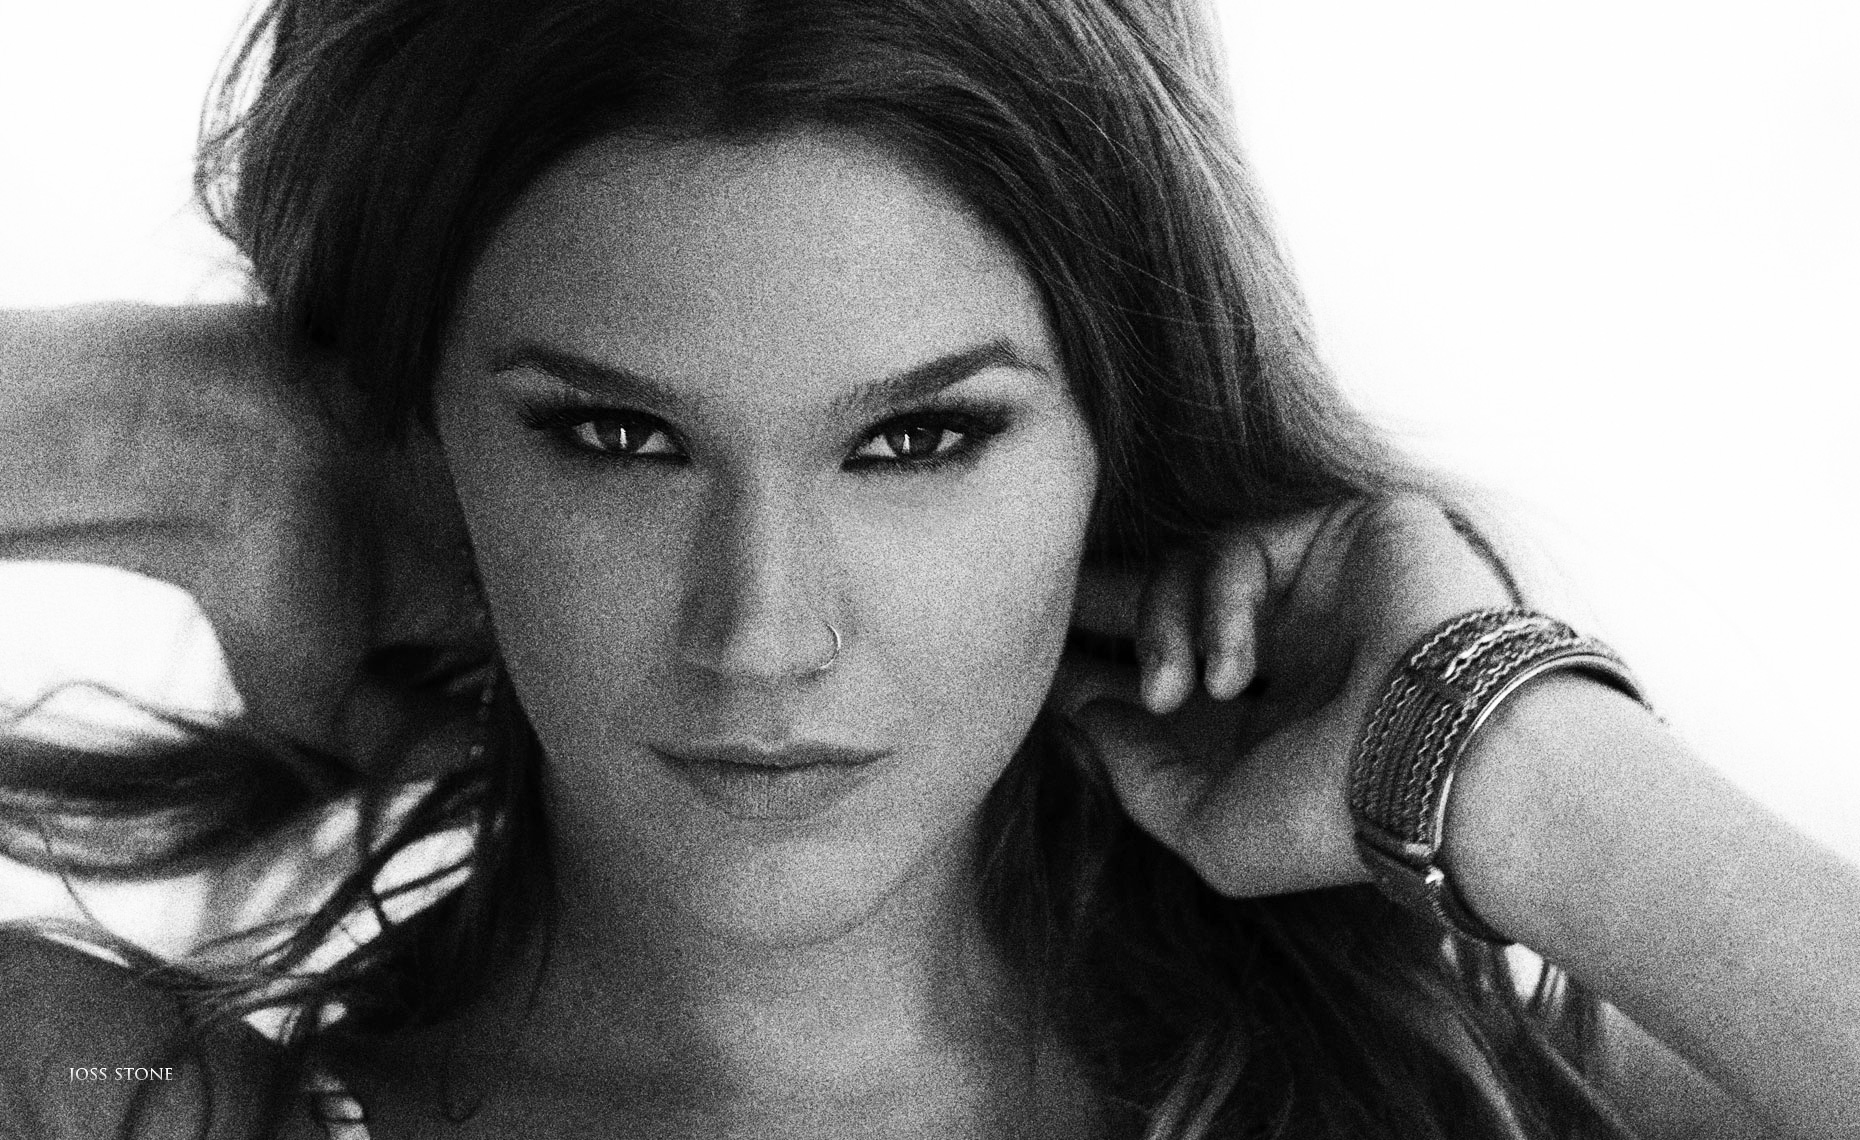 joss stone with name.jpg